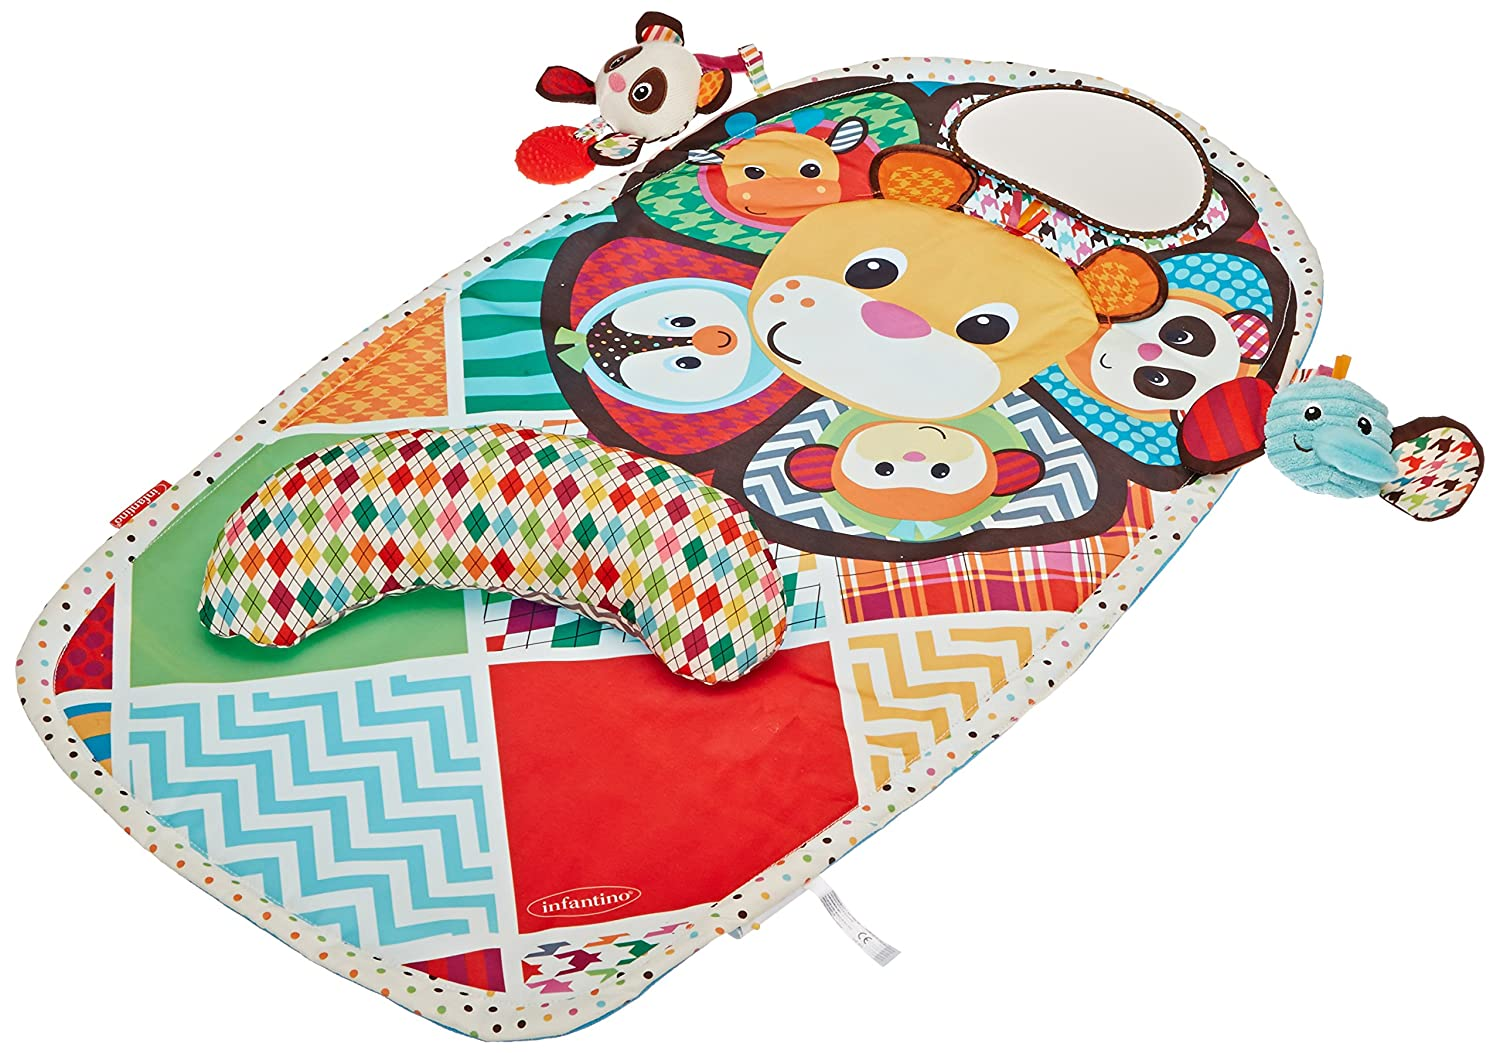 Infantino Peek and Play Tummy Time Activity Mat 206-941